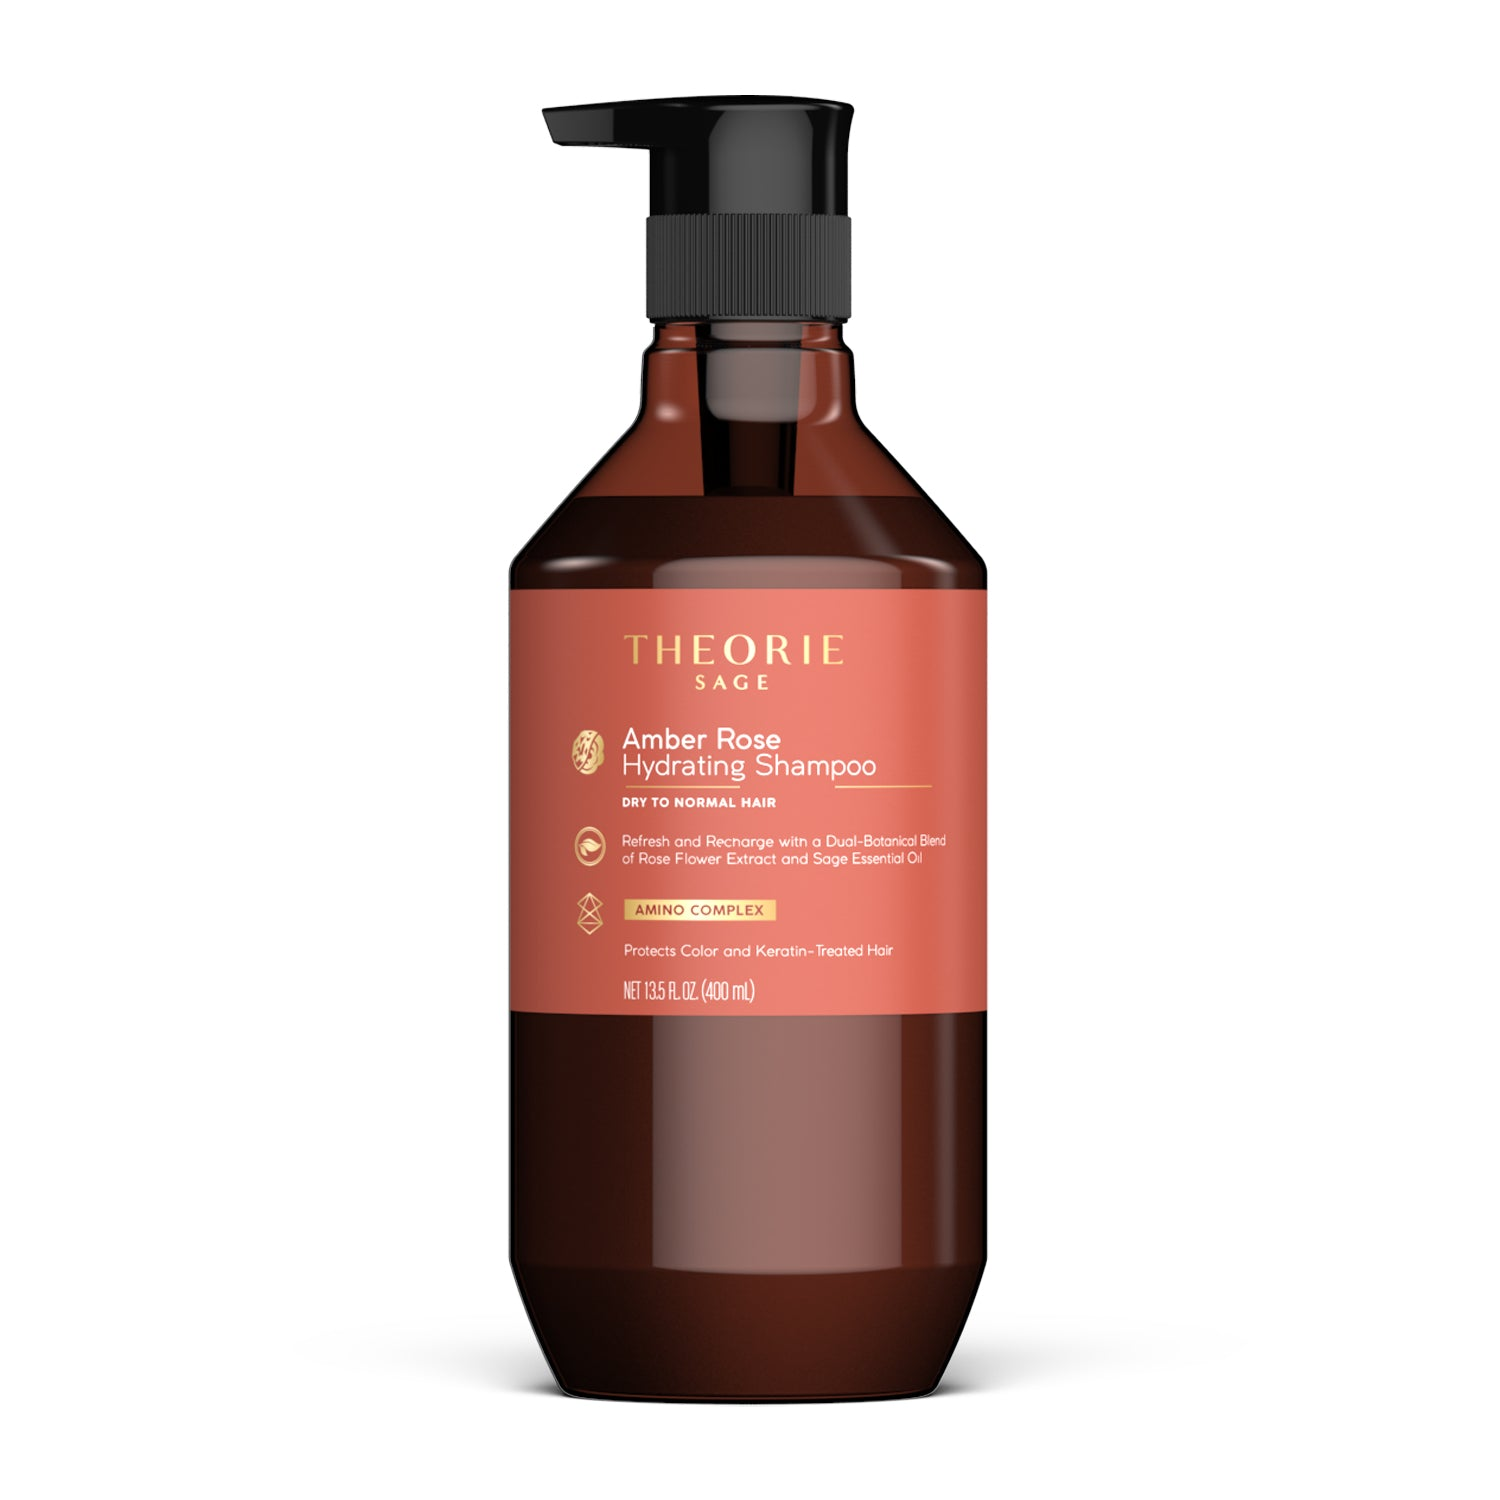 Theorie Sage: Amber Rose - Hydrating Shampoo